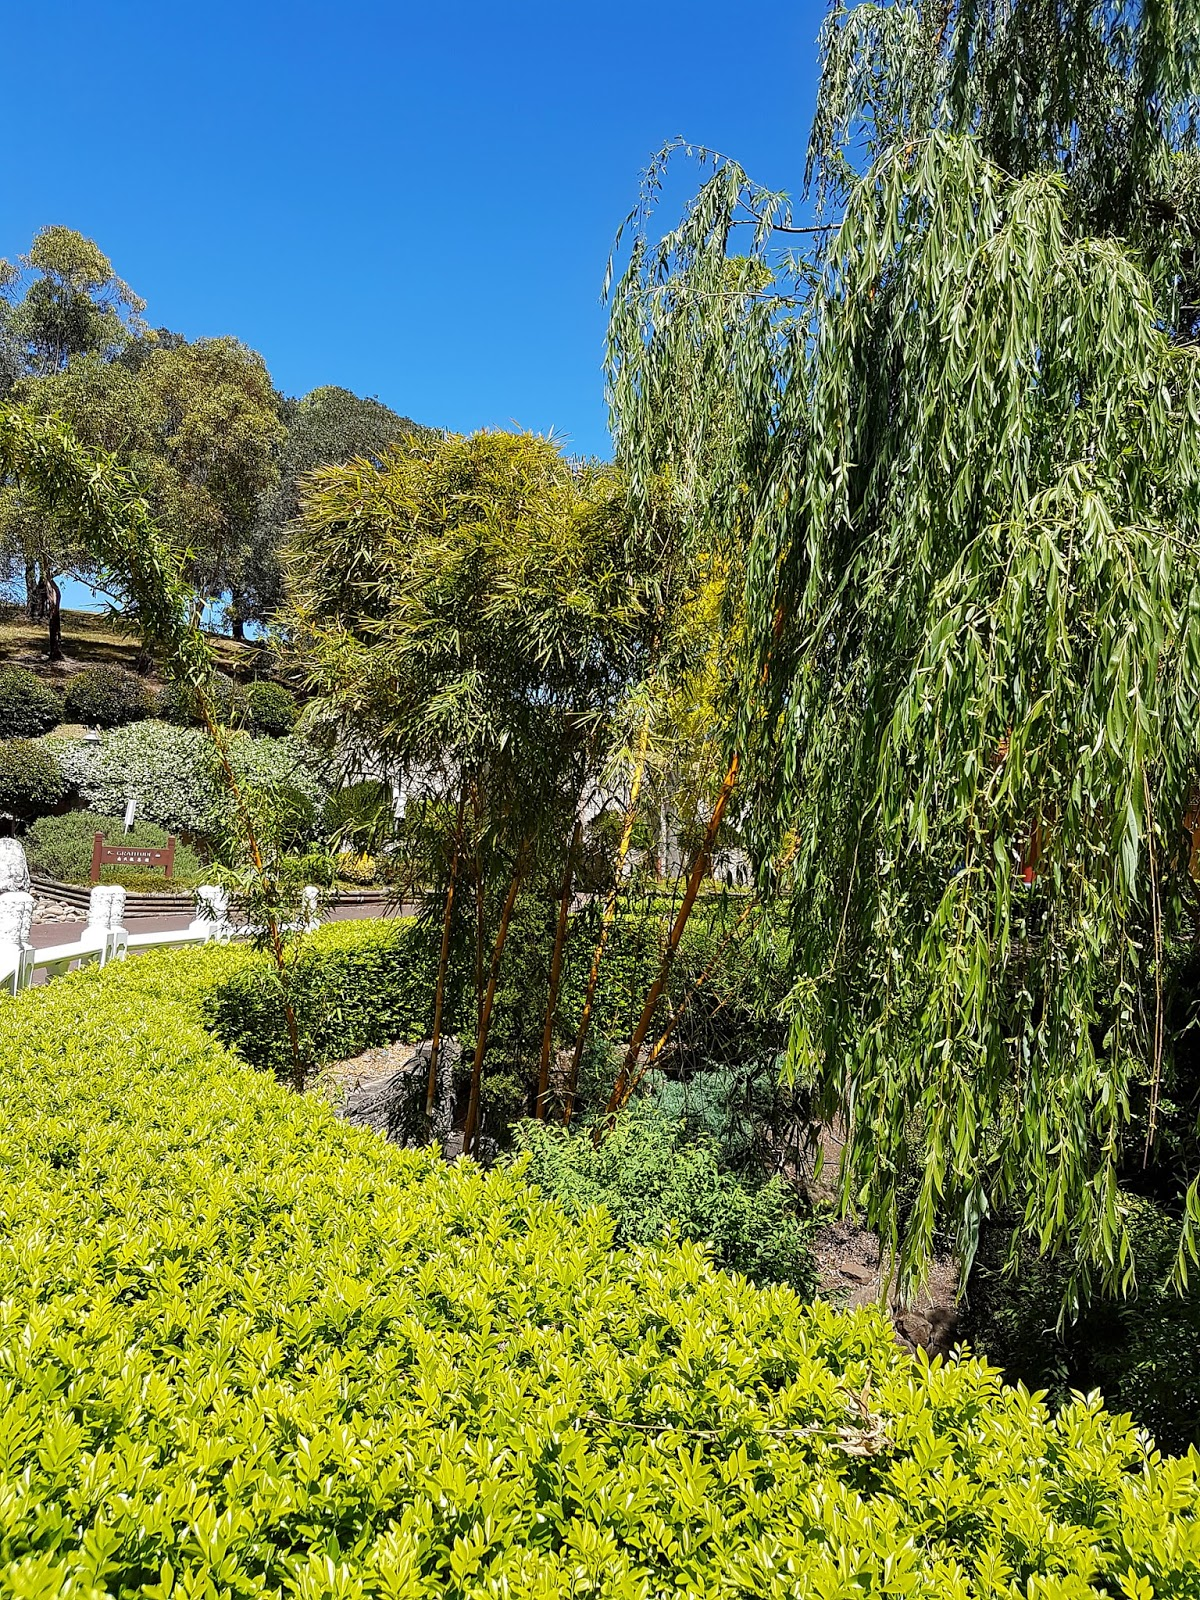 how to get to nan tien temple from wollongong station